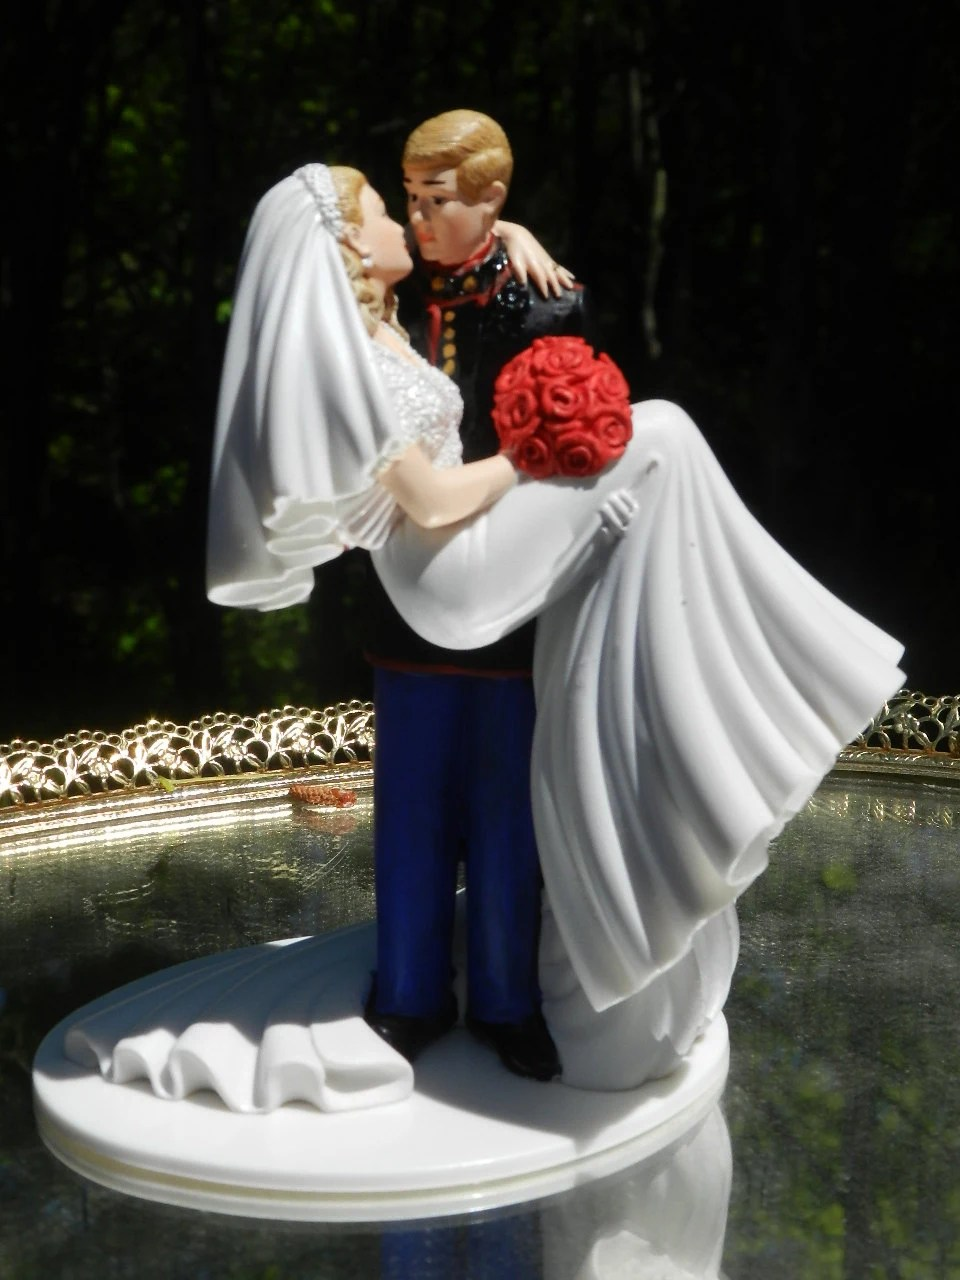 US Military Marine Corps Wedding Cake Topper By CarolinaCarla